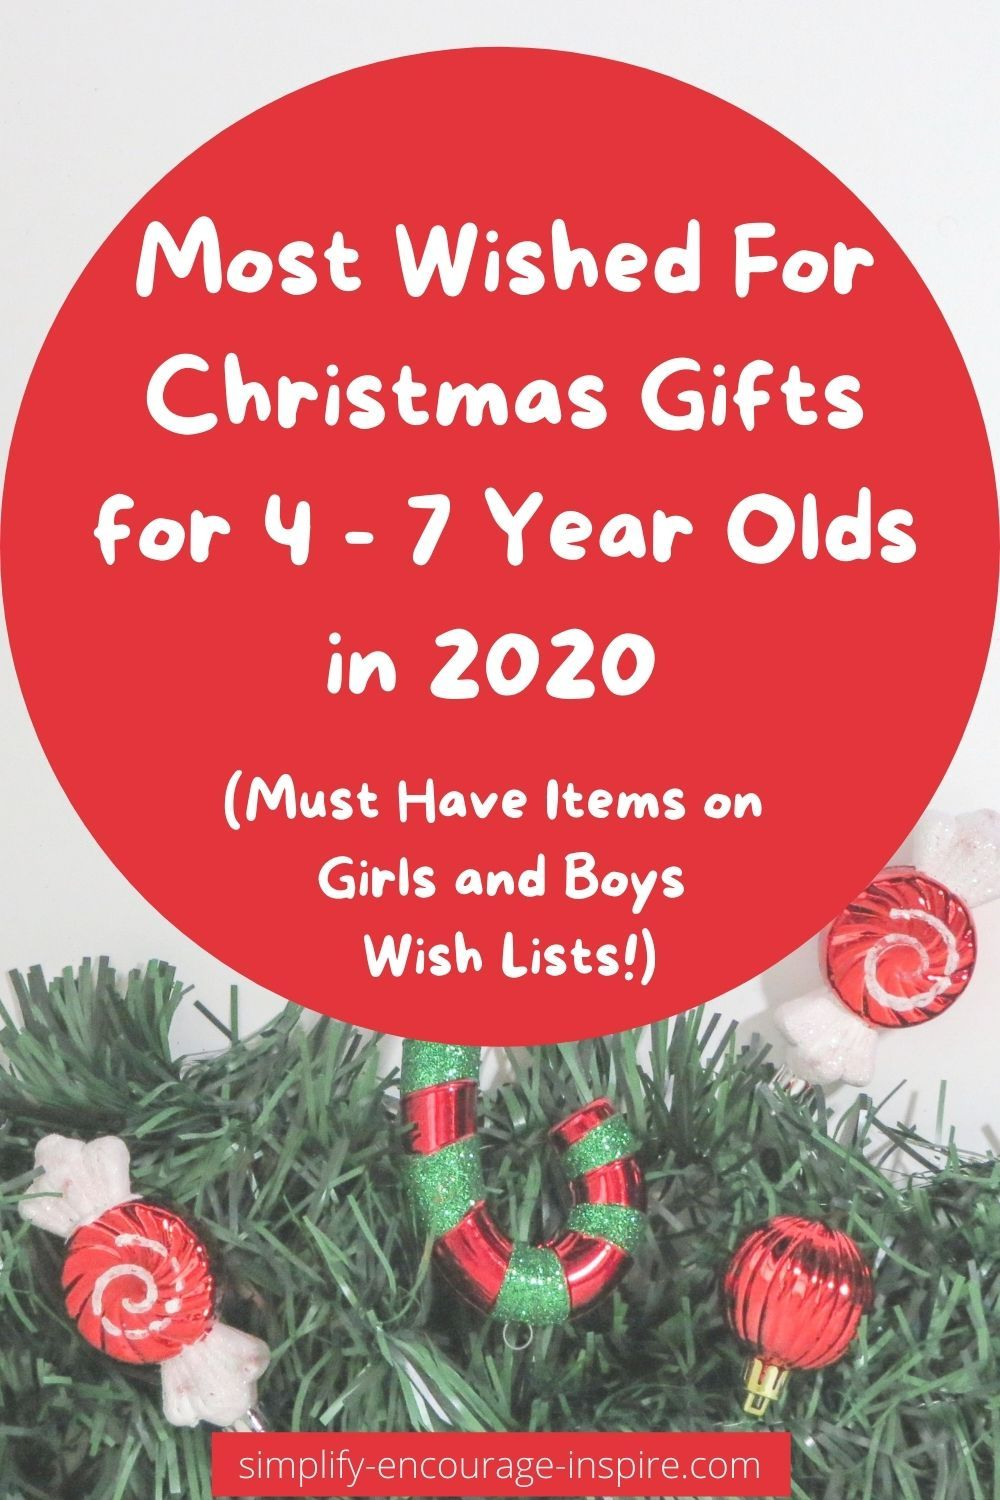 Kids Christmas Gift Ideas In 2020 In 2020 Best Kids Christmas Gifts Christmas Gifts For Kids Christmas Gifts